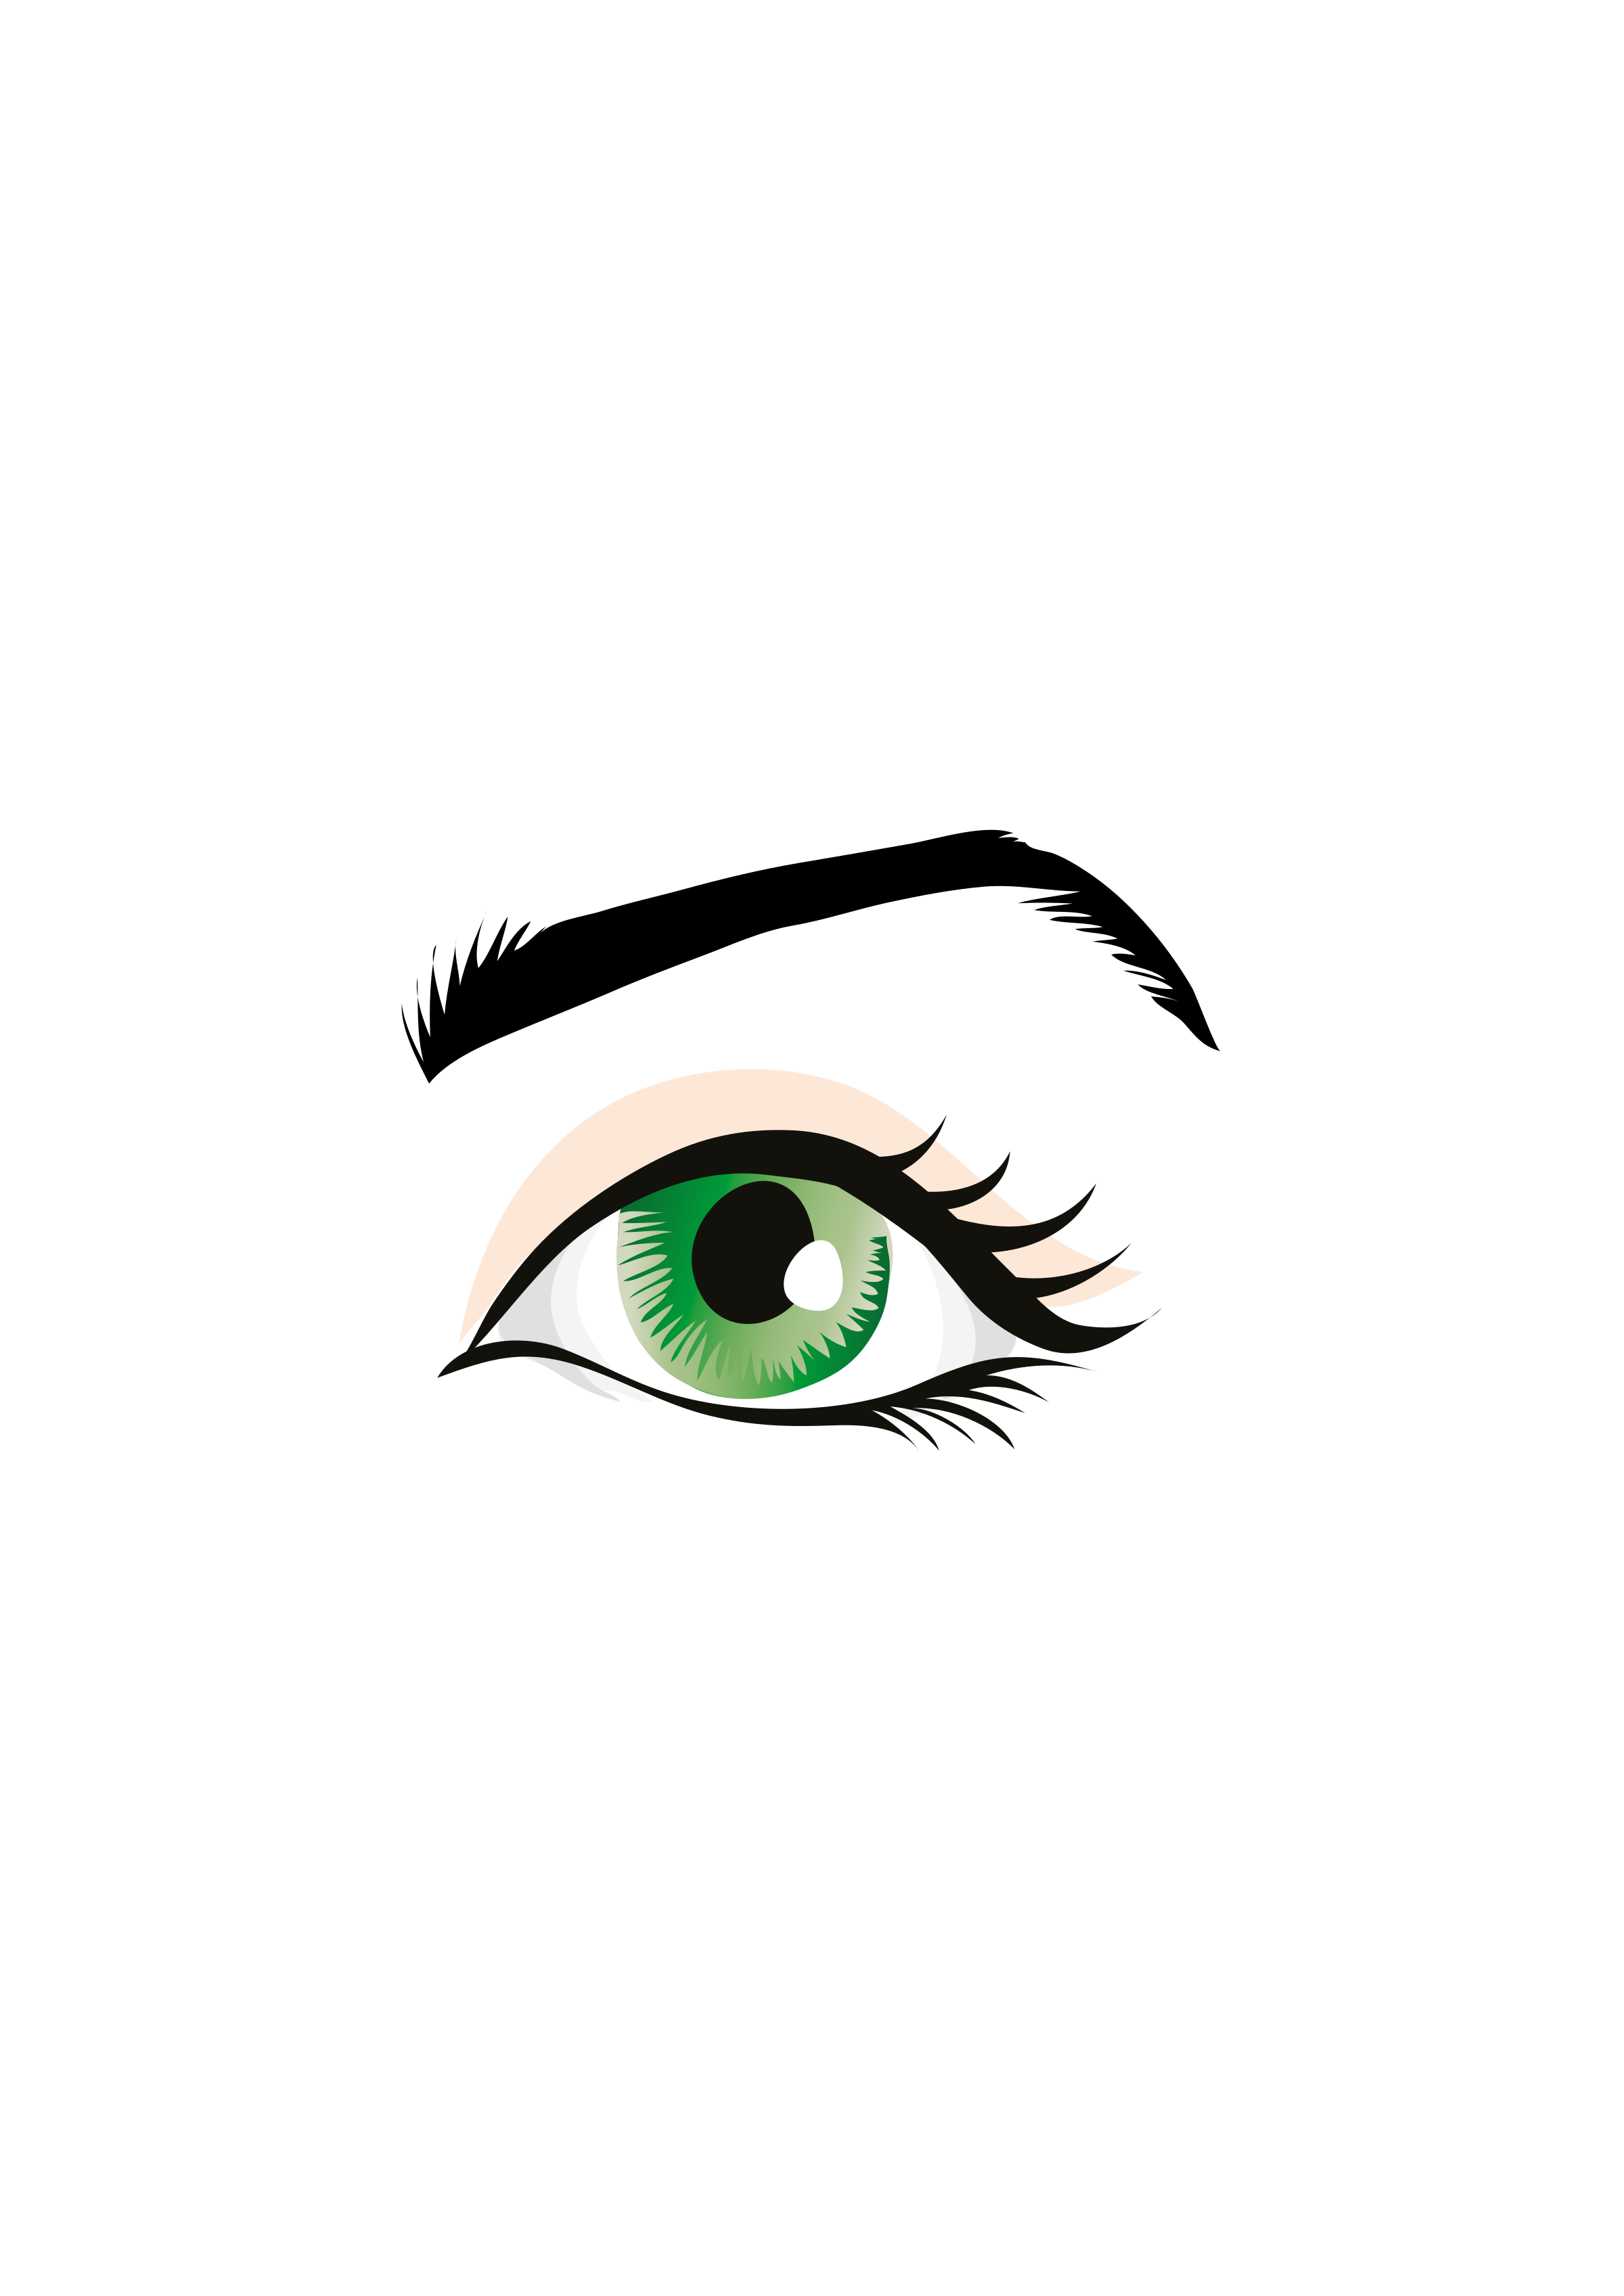 Eyebrow clipart eyelid. Occhio icons png free